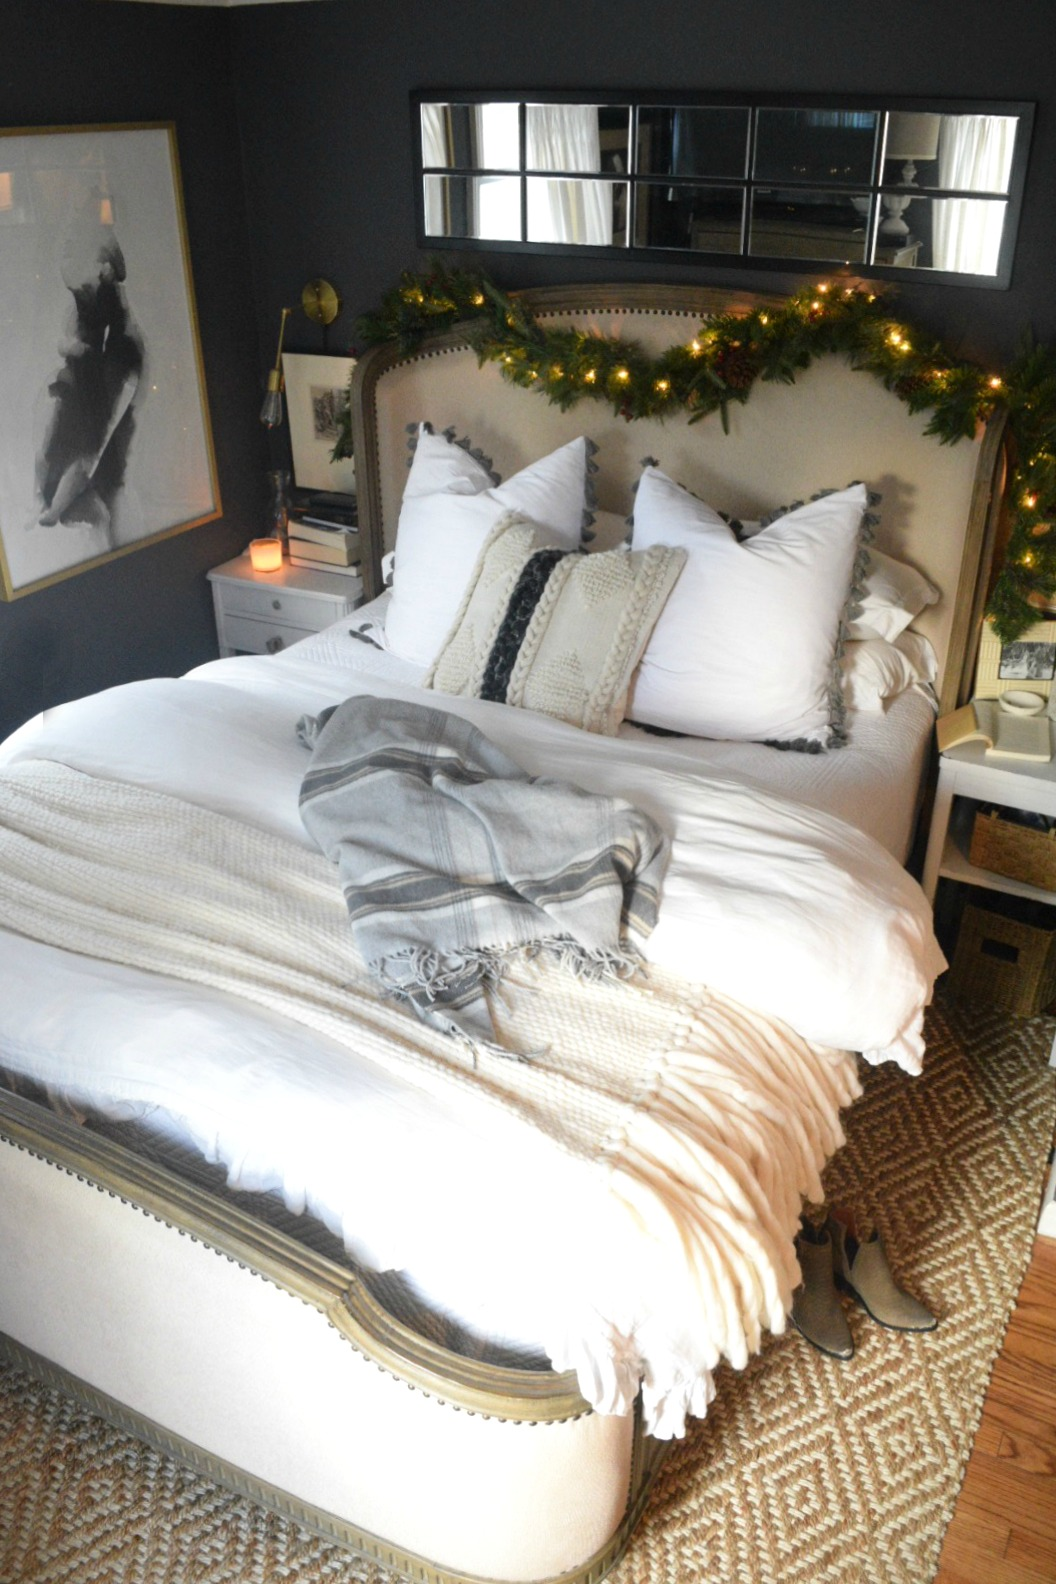 Cozy And Simple Living Room: Christmas Bedroom- Simple Winter Touches